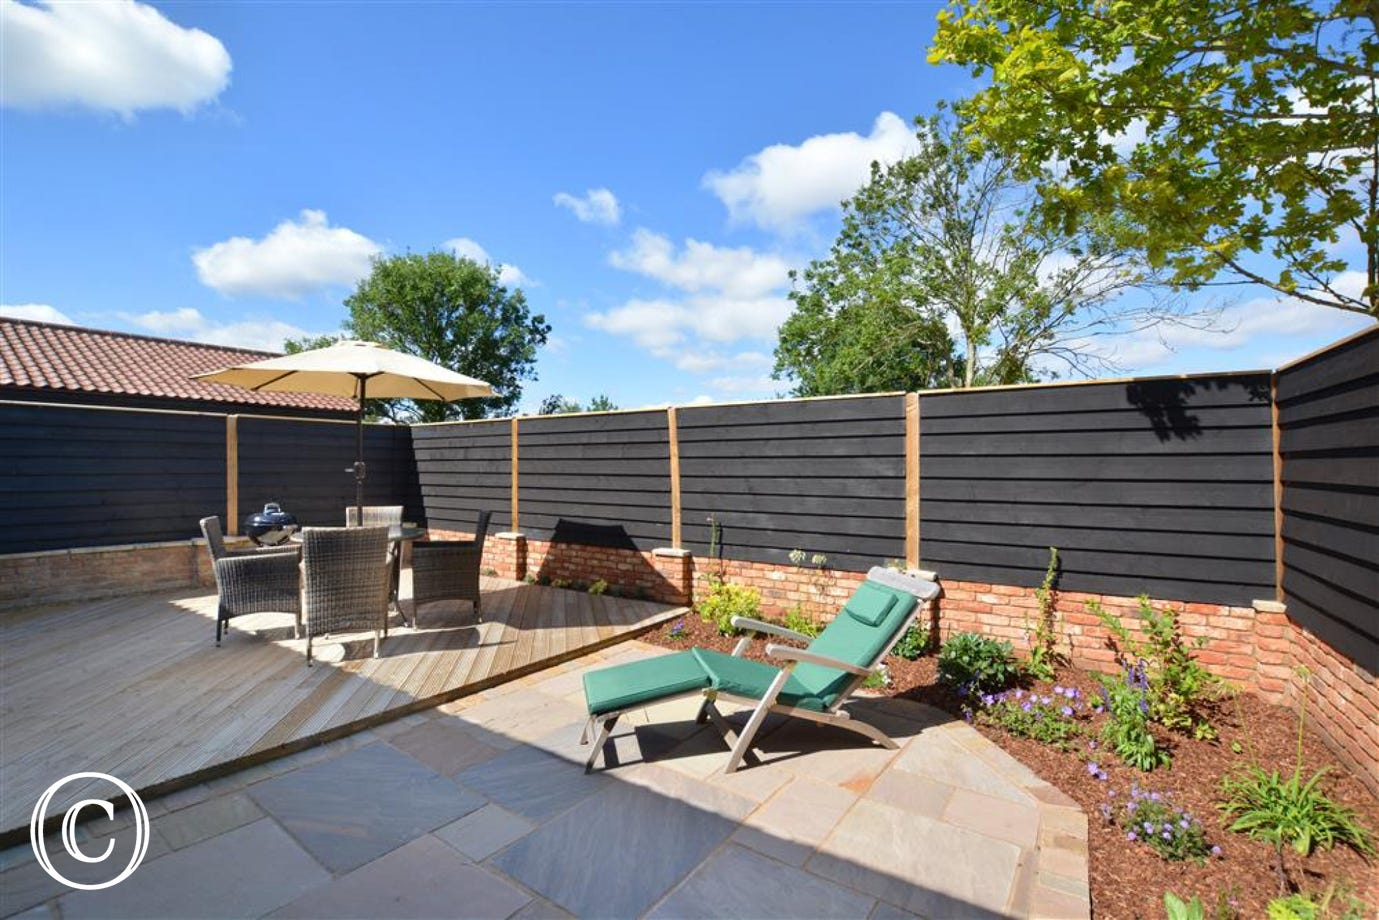 Lovely sunny garden with decking and seating